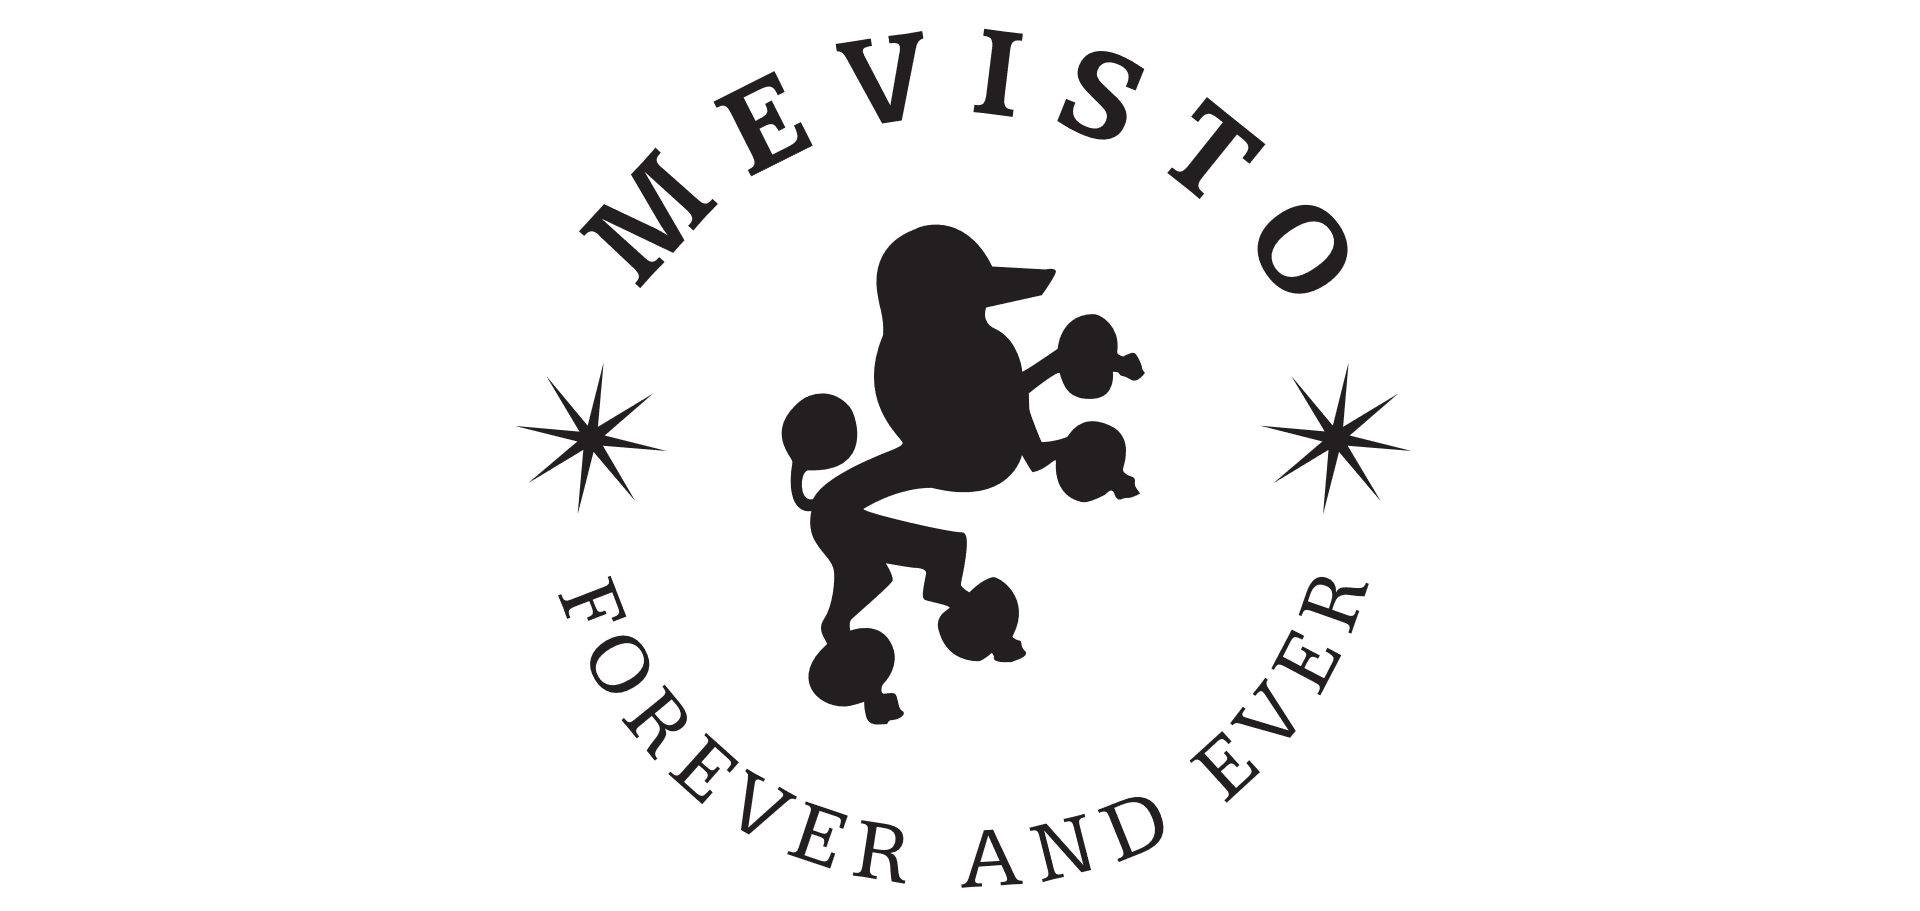 Mevisto - Forever and Ever